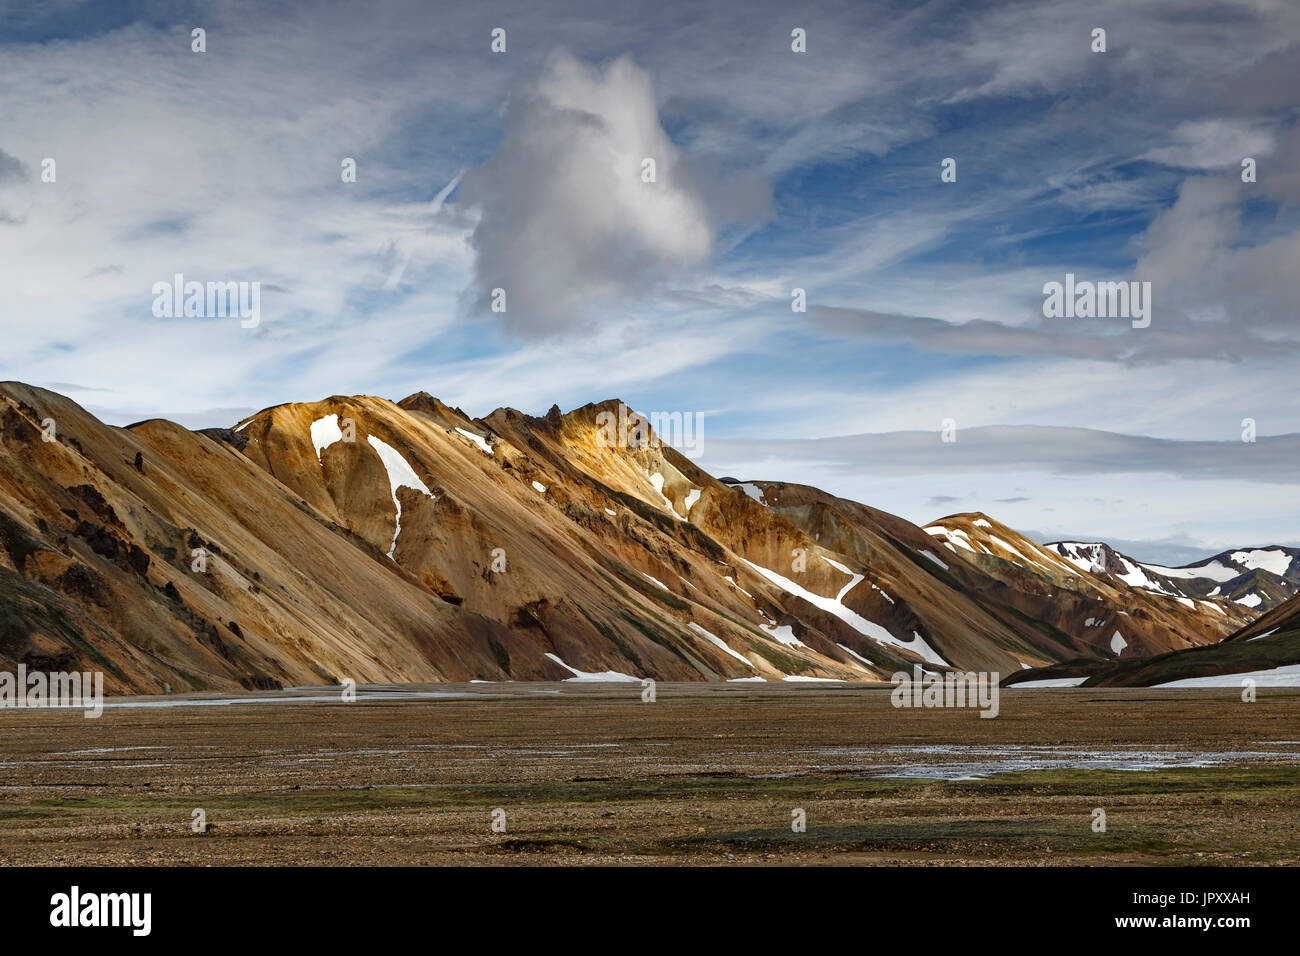 Rhyolite mountains near campground, Landmannalaugar, Fjallabak Nature Reserve, Iceland - Stock Image